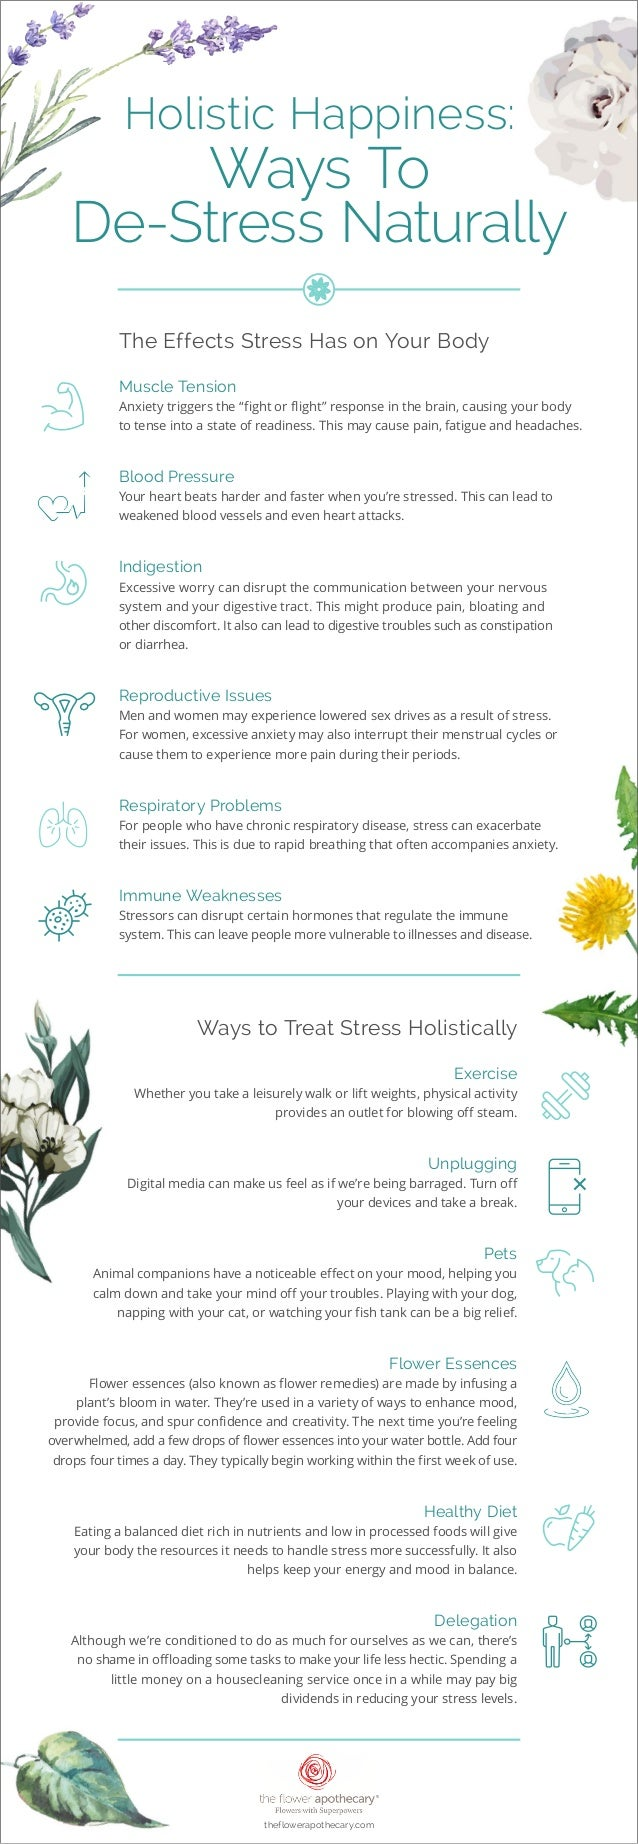 Holistic Happiness: Ways To De-Stress Naturally